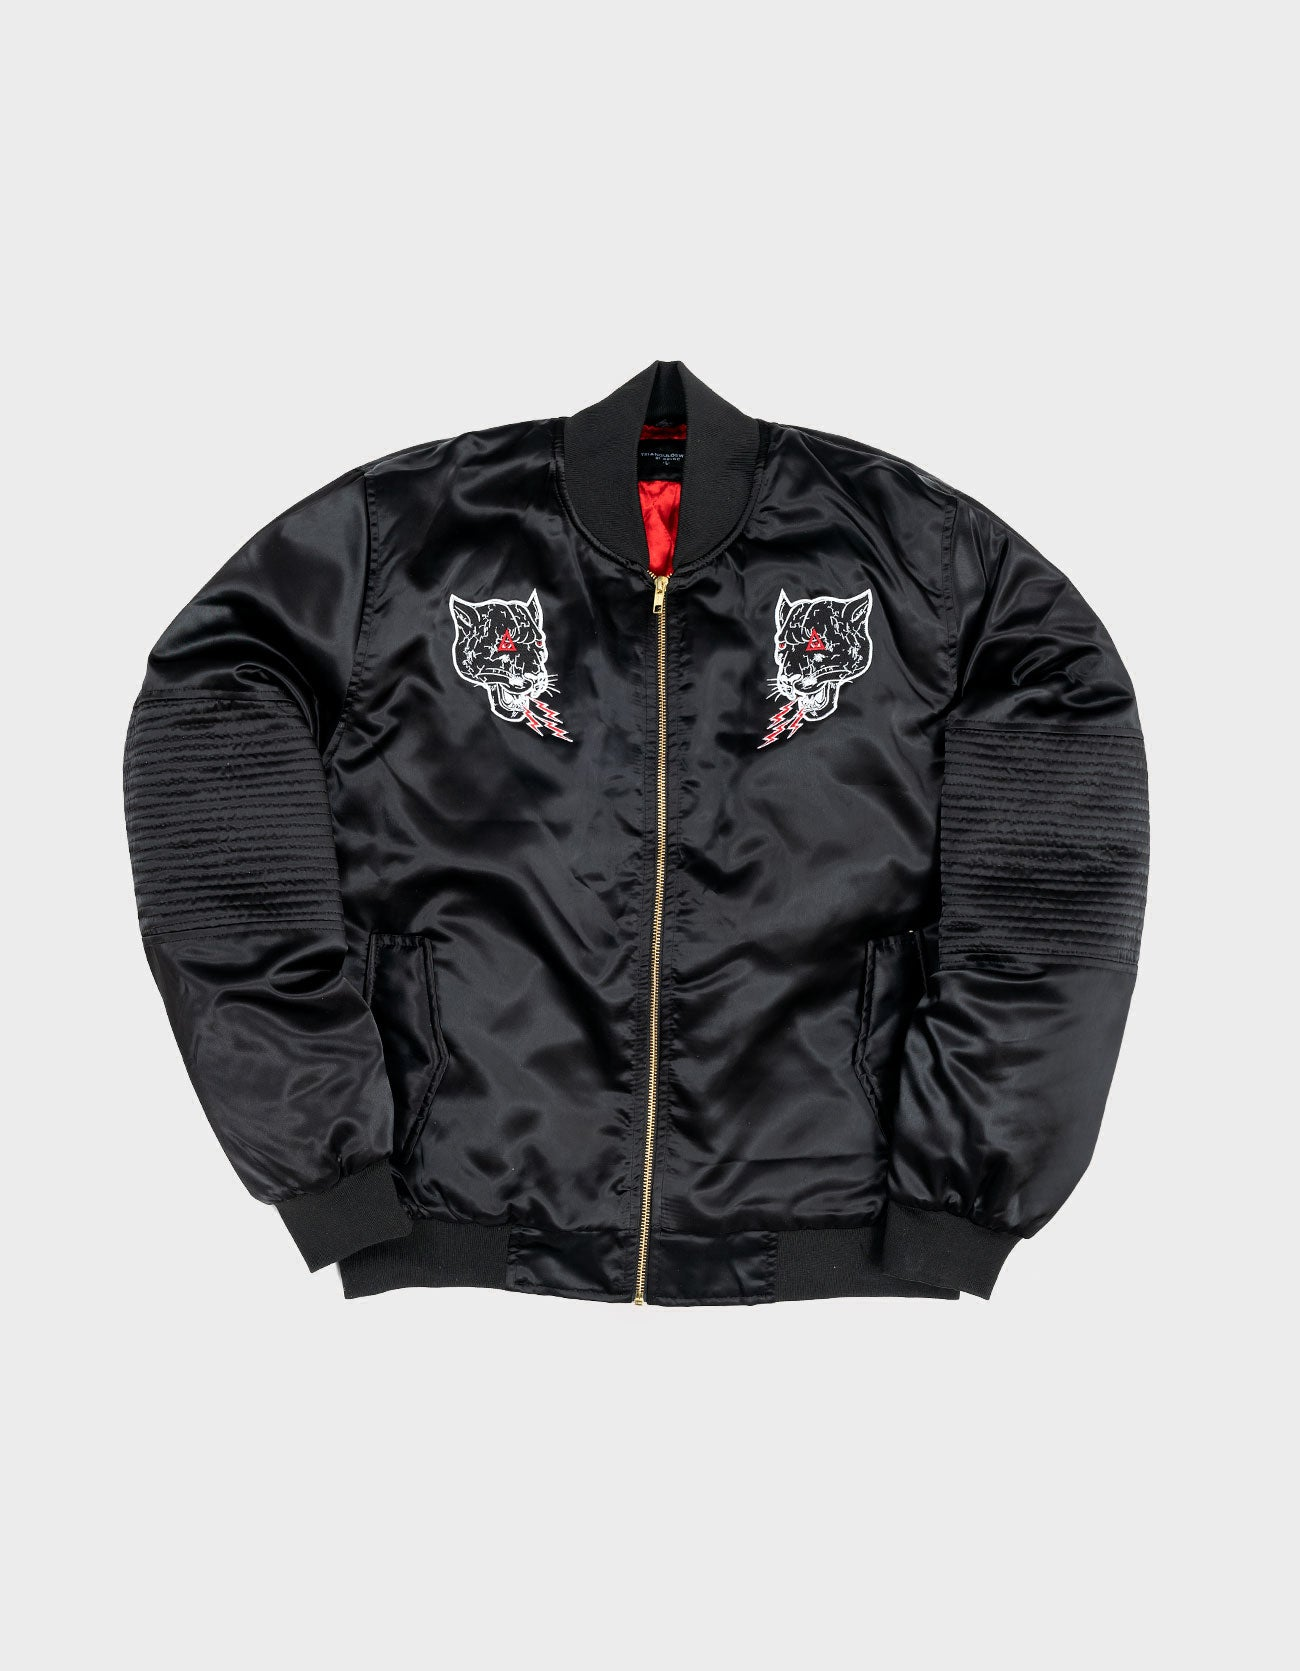 PANTHER BLACK LIMITED EDITION JACKET - Triangulo Swag